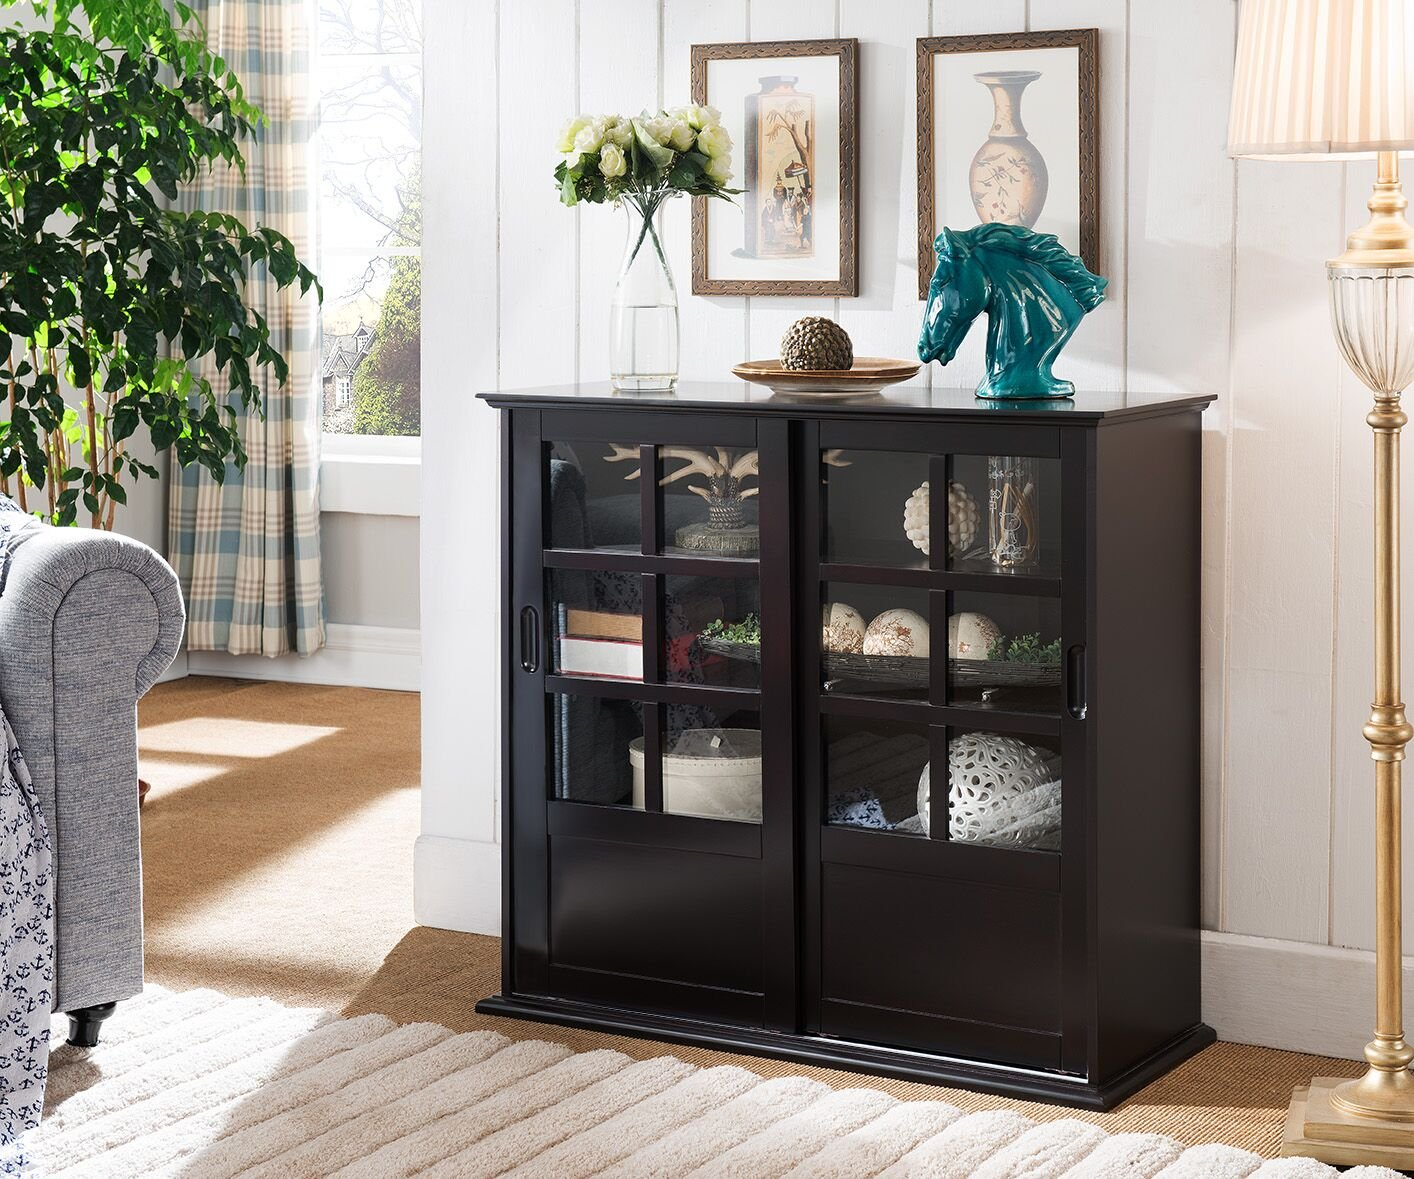 Kings Brand Furniture CU1441 Holmes Espresso Wood Curio Cabinet with Glass Sliding Doors